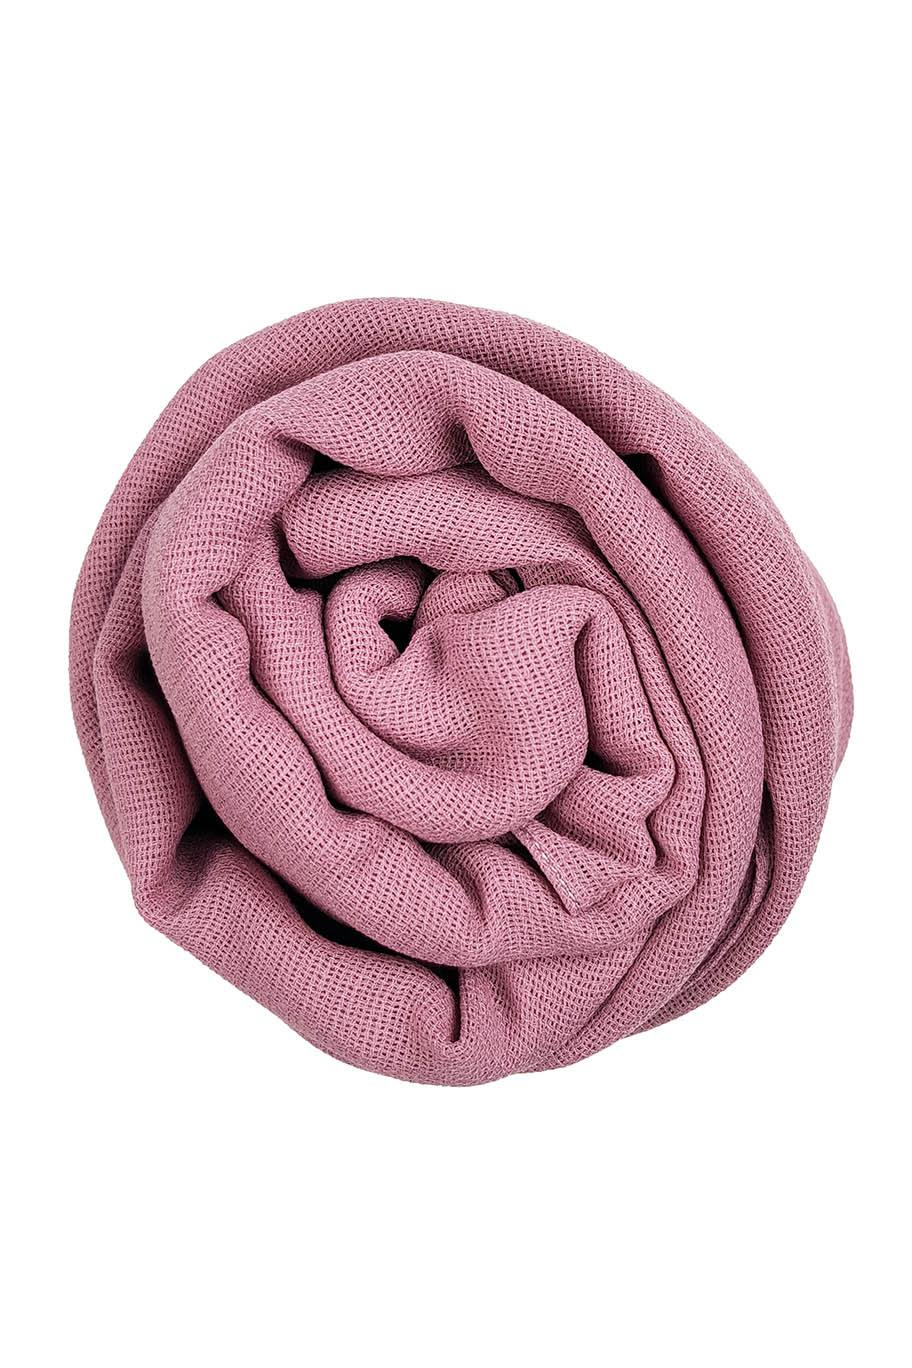 Pink Sand Jute Cotton - Jute-Cotton Hijab - The Modest Look